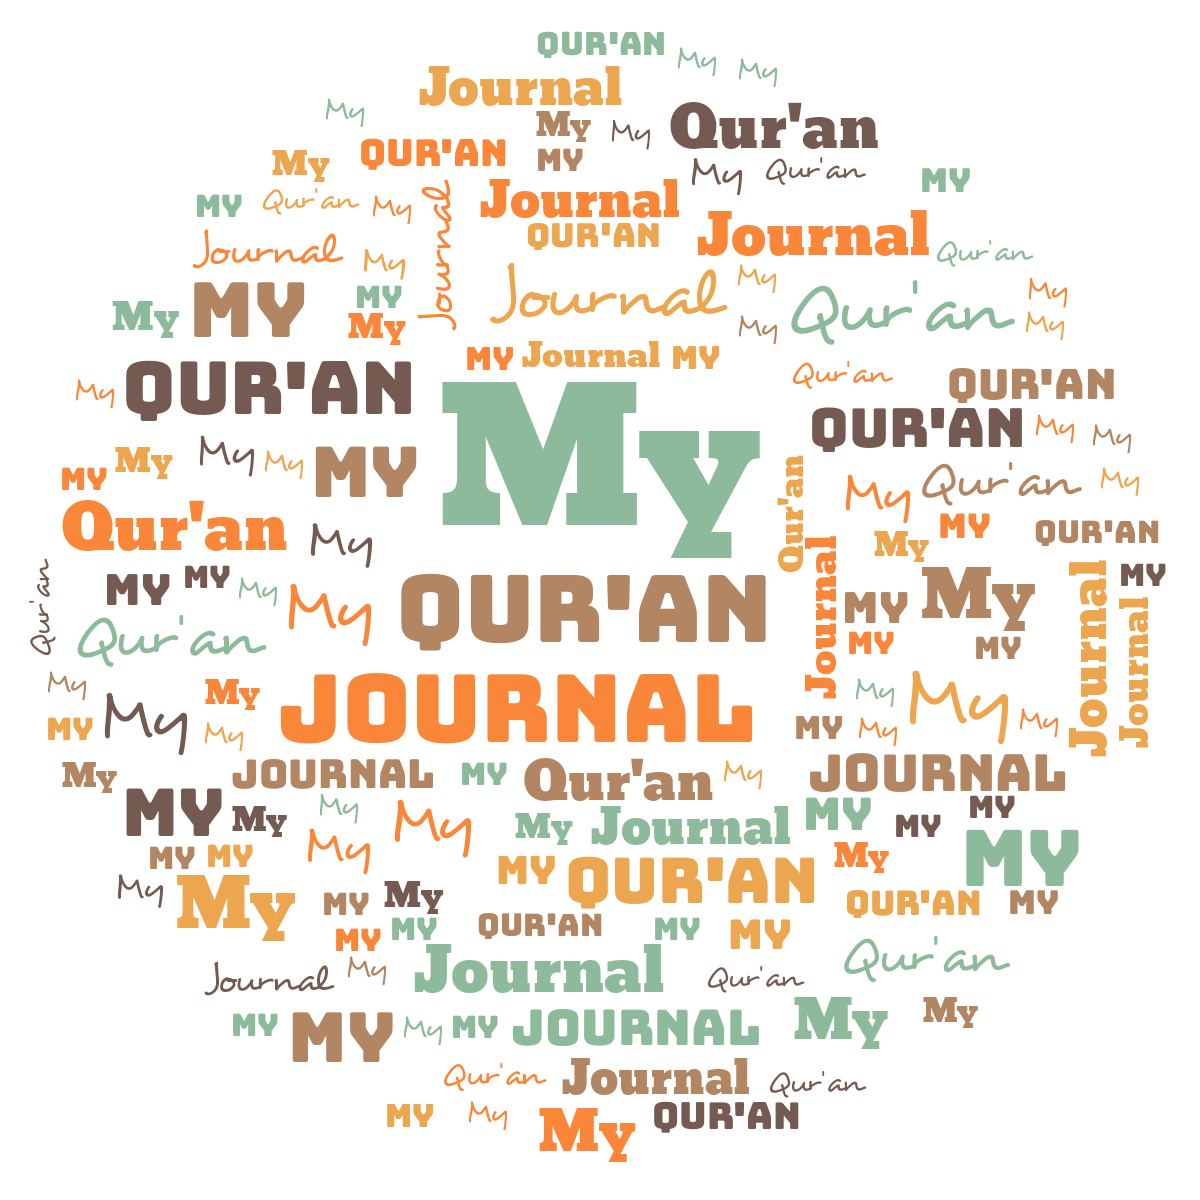 My Qur'an Journal